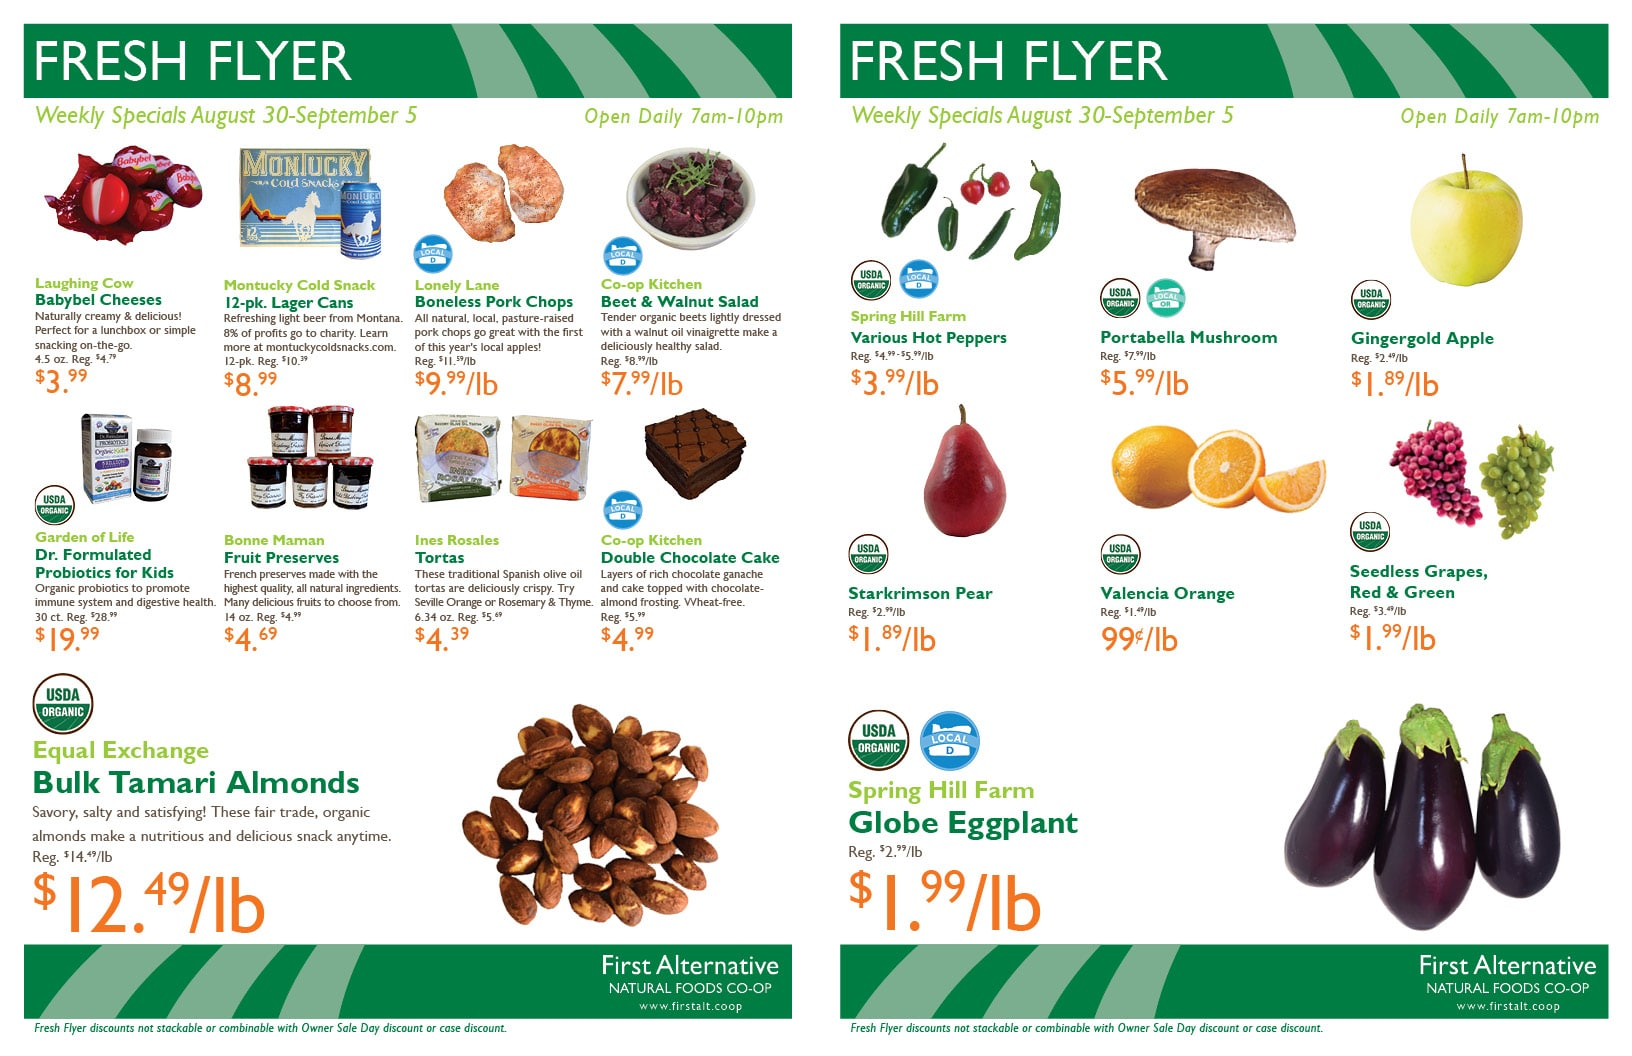 First Alternative Co-op Fresh Flyer August 30-September 5